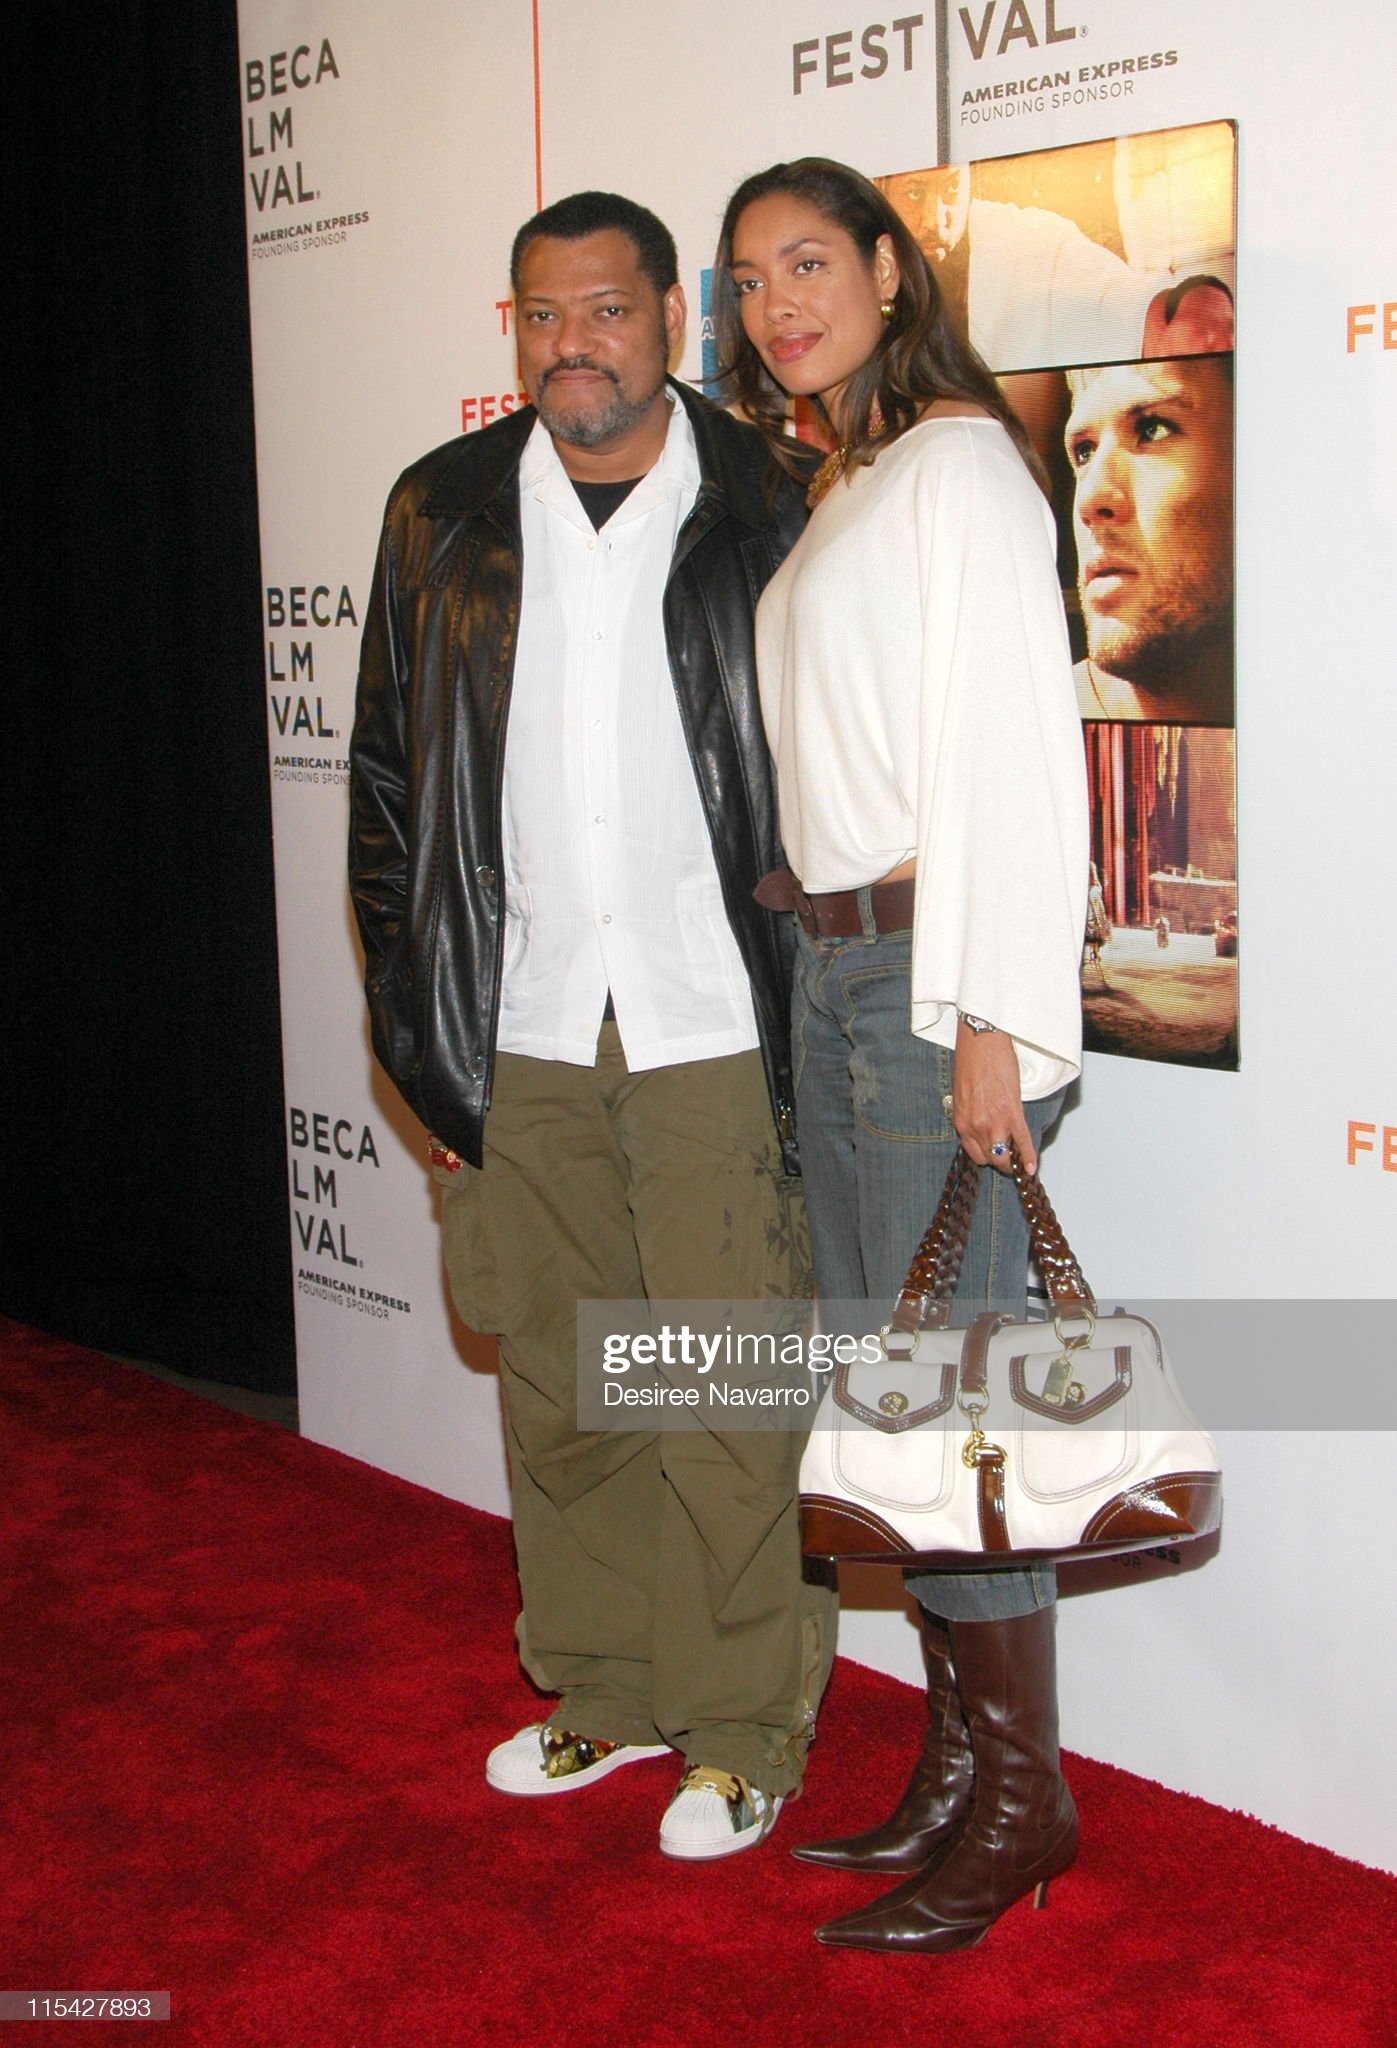 ¿Cuánto mide Laurence Fishburne? - Real height Laurence-fishburne-and-gina-torres-during-5th-annual-tribeca-film-picture-id115427893?s=2048x2048